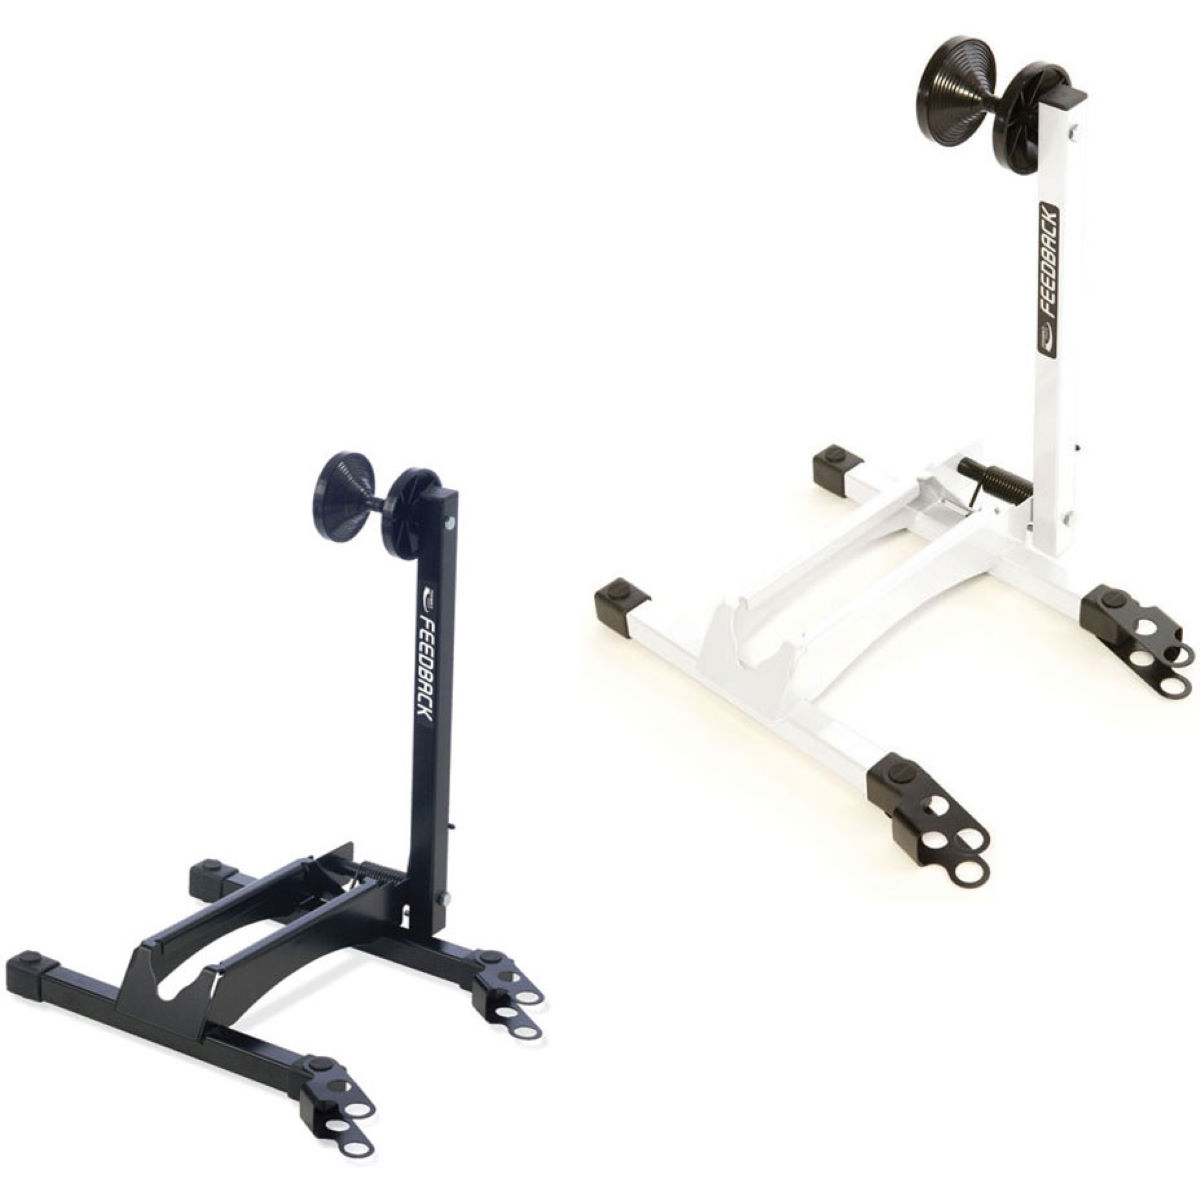 Feedback Sports Rakk Bicycle Storage Stand